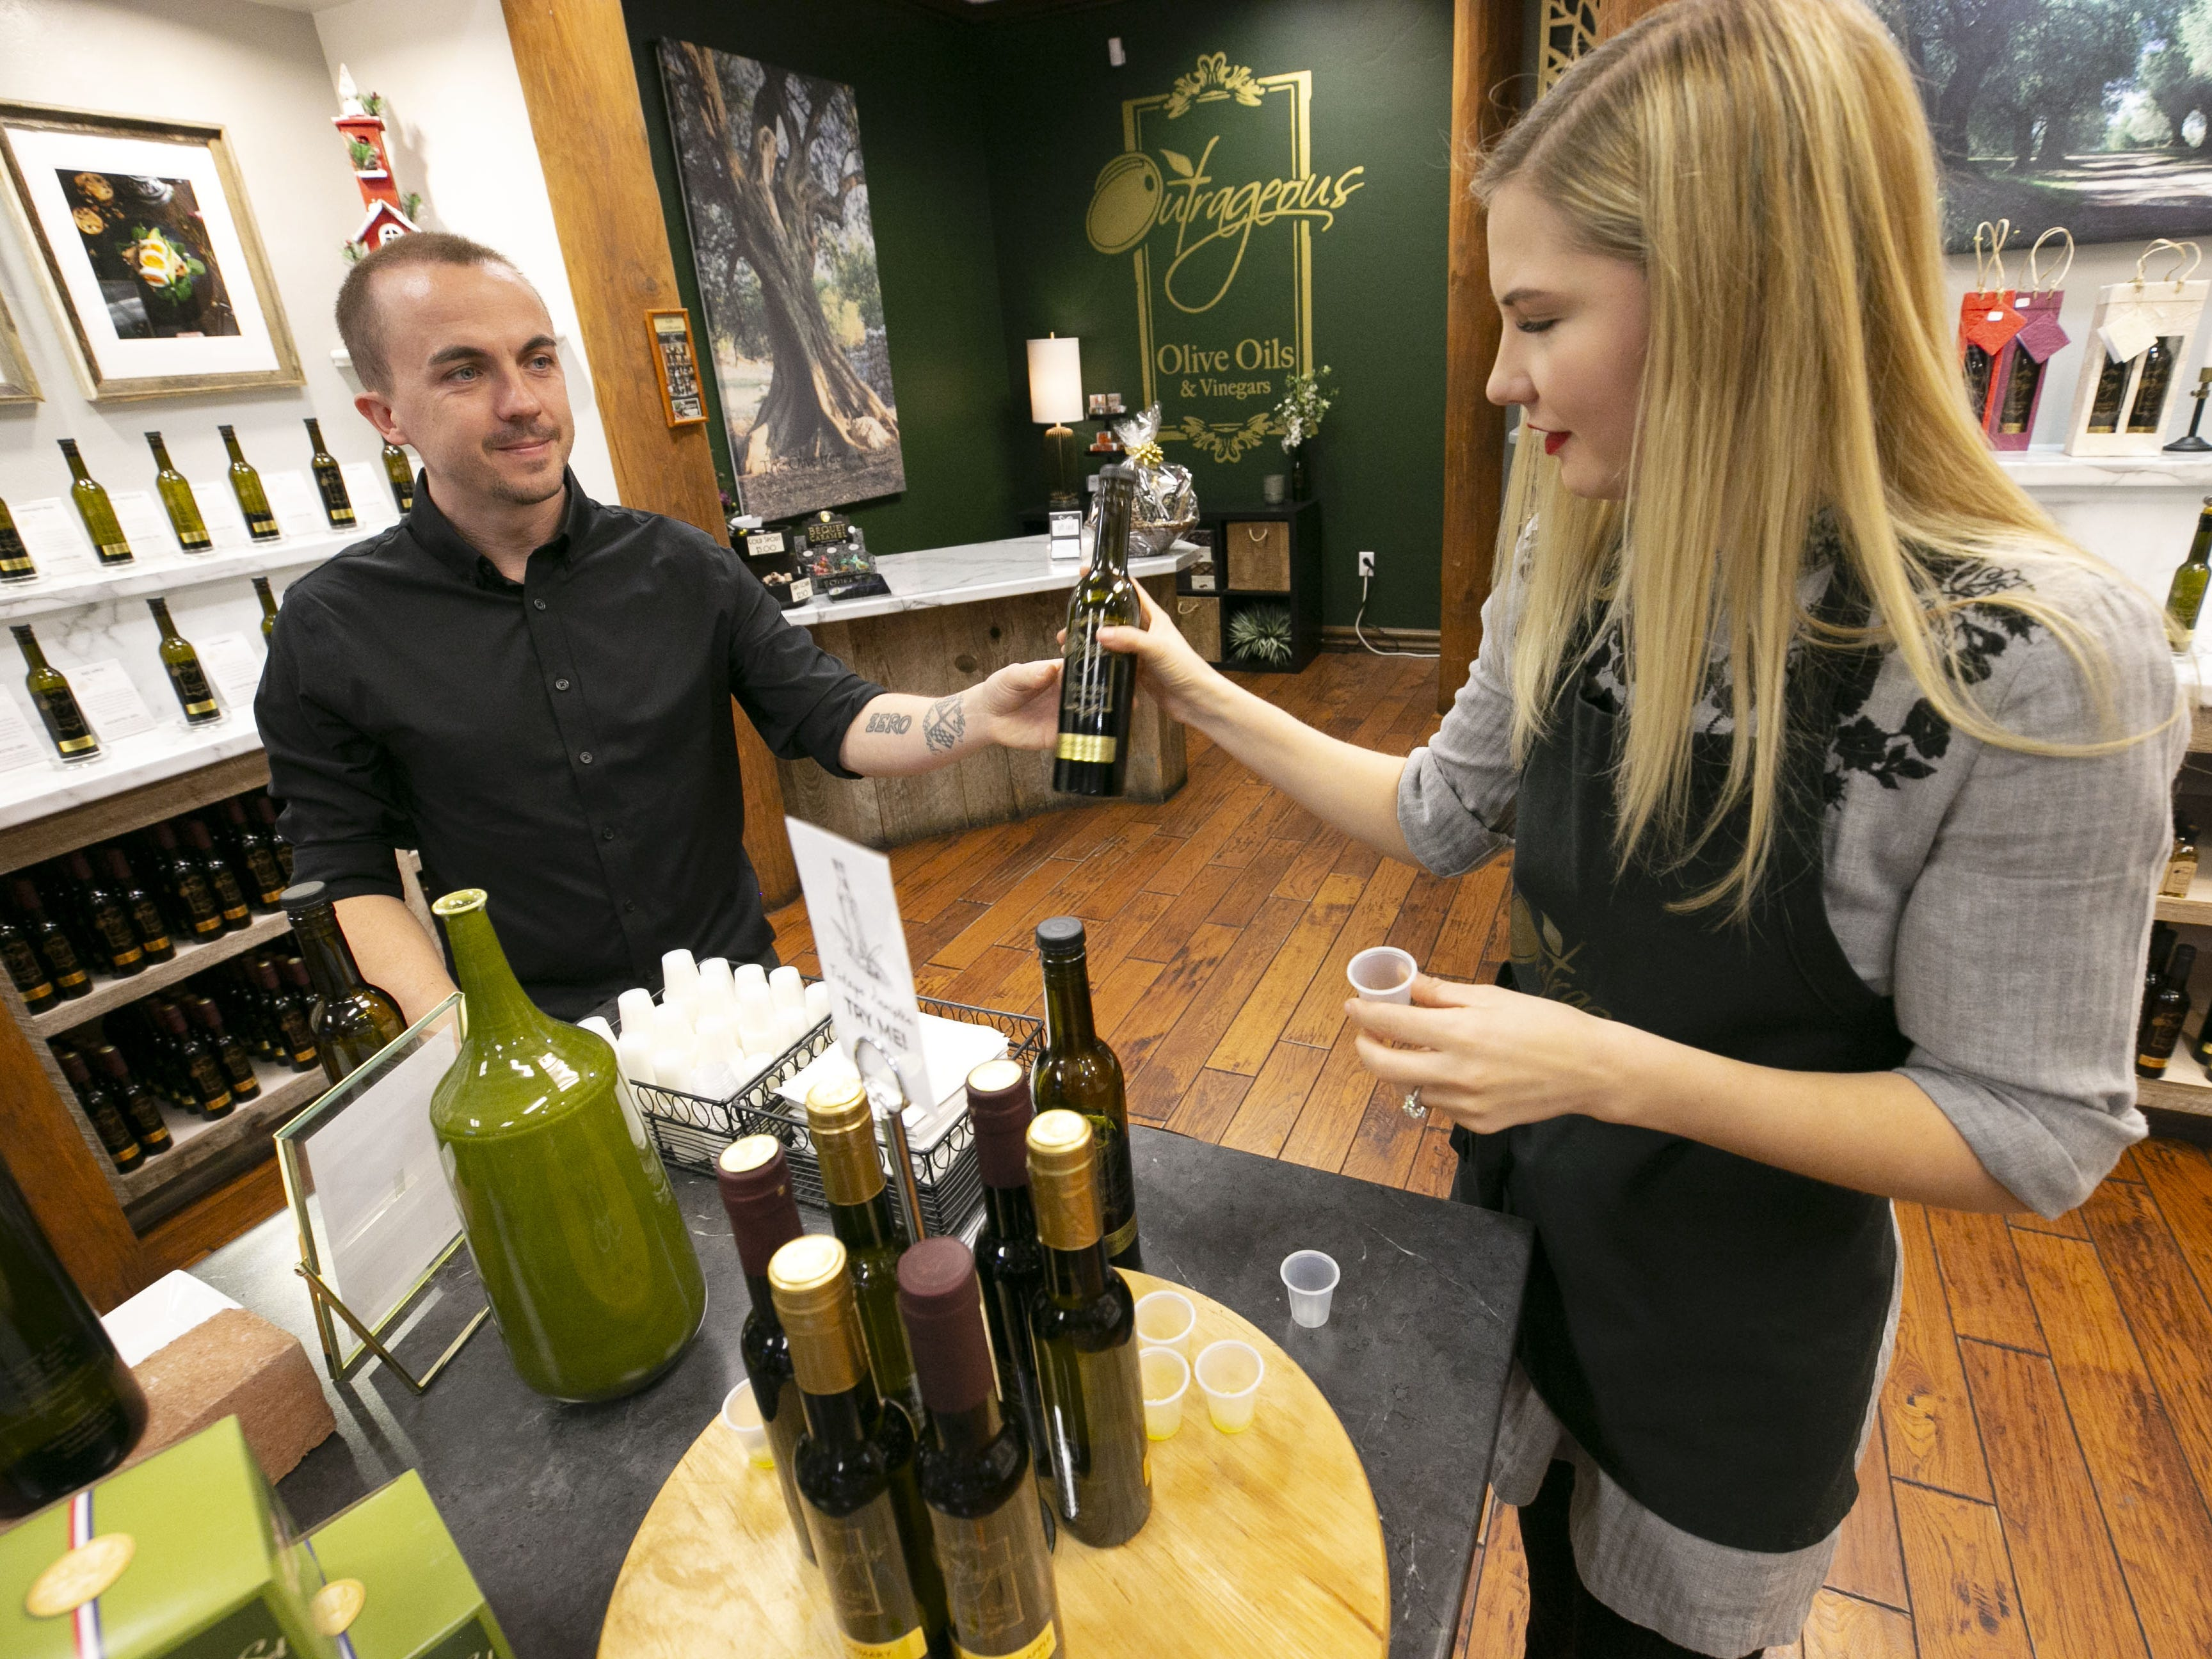 Child actor Frankie Muniz hands a bottle of olive oil to his fiance, Paige Price at their shop, Outrageous Olive Oils & Vinegars in Old Town Scottsdale on Tuesday, Dec. 11, 2018. The couple own and run the store.